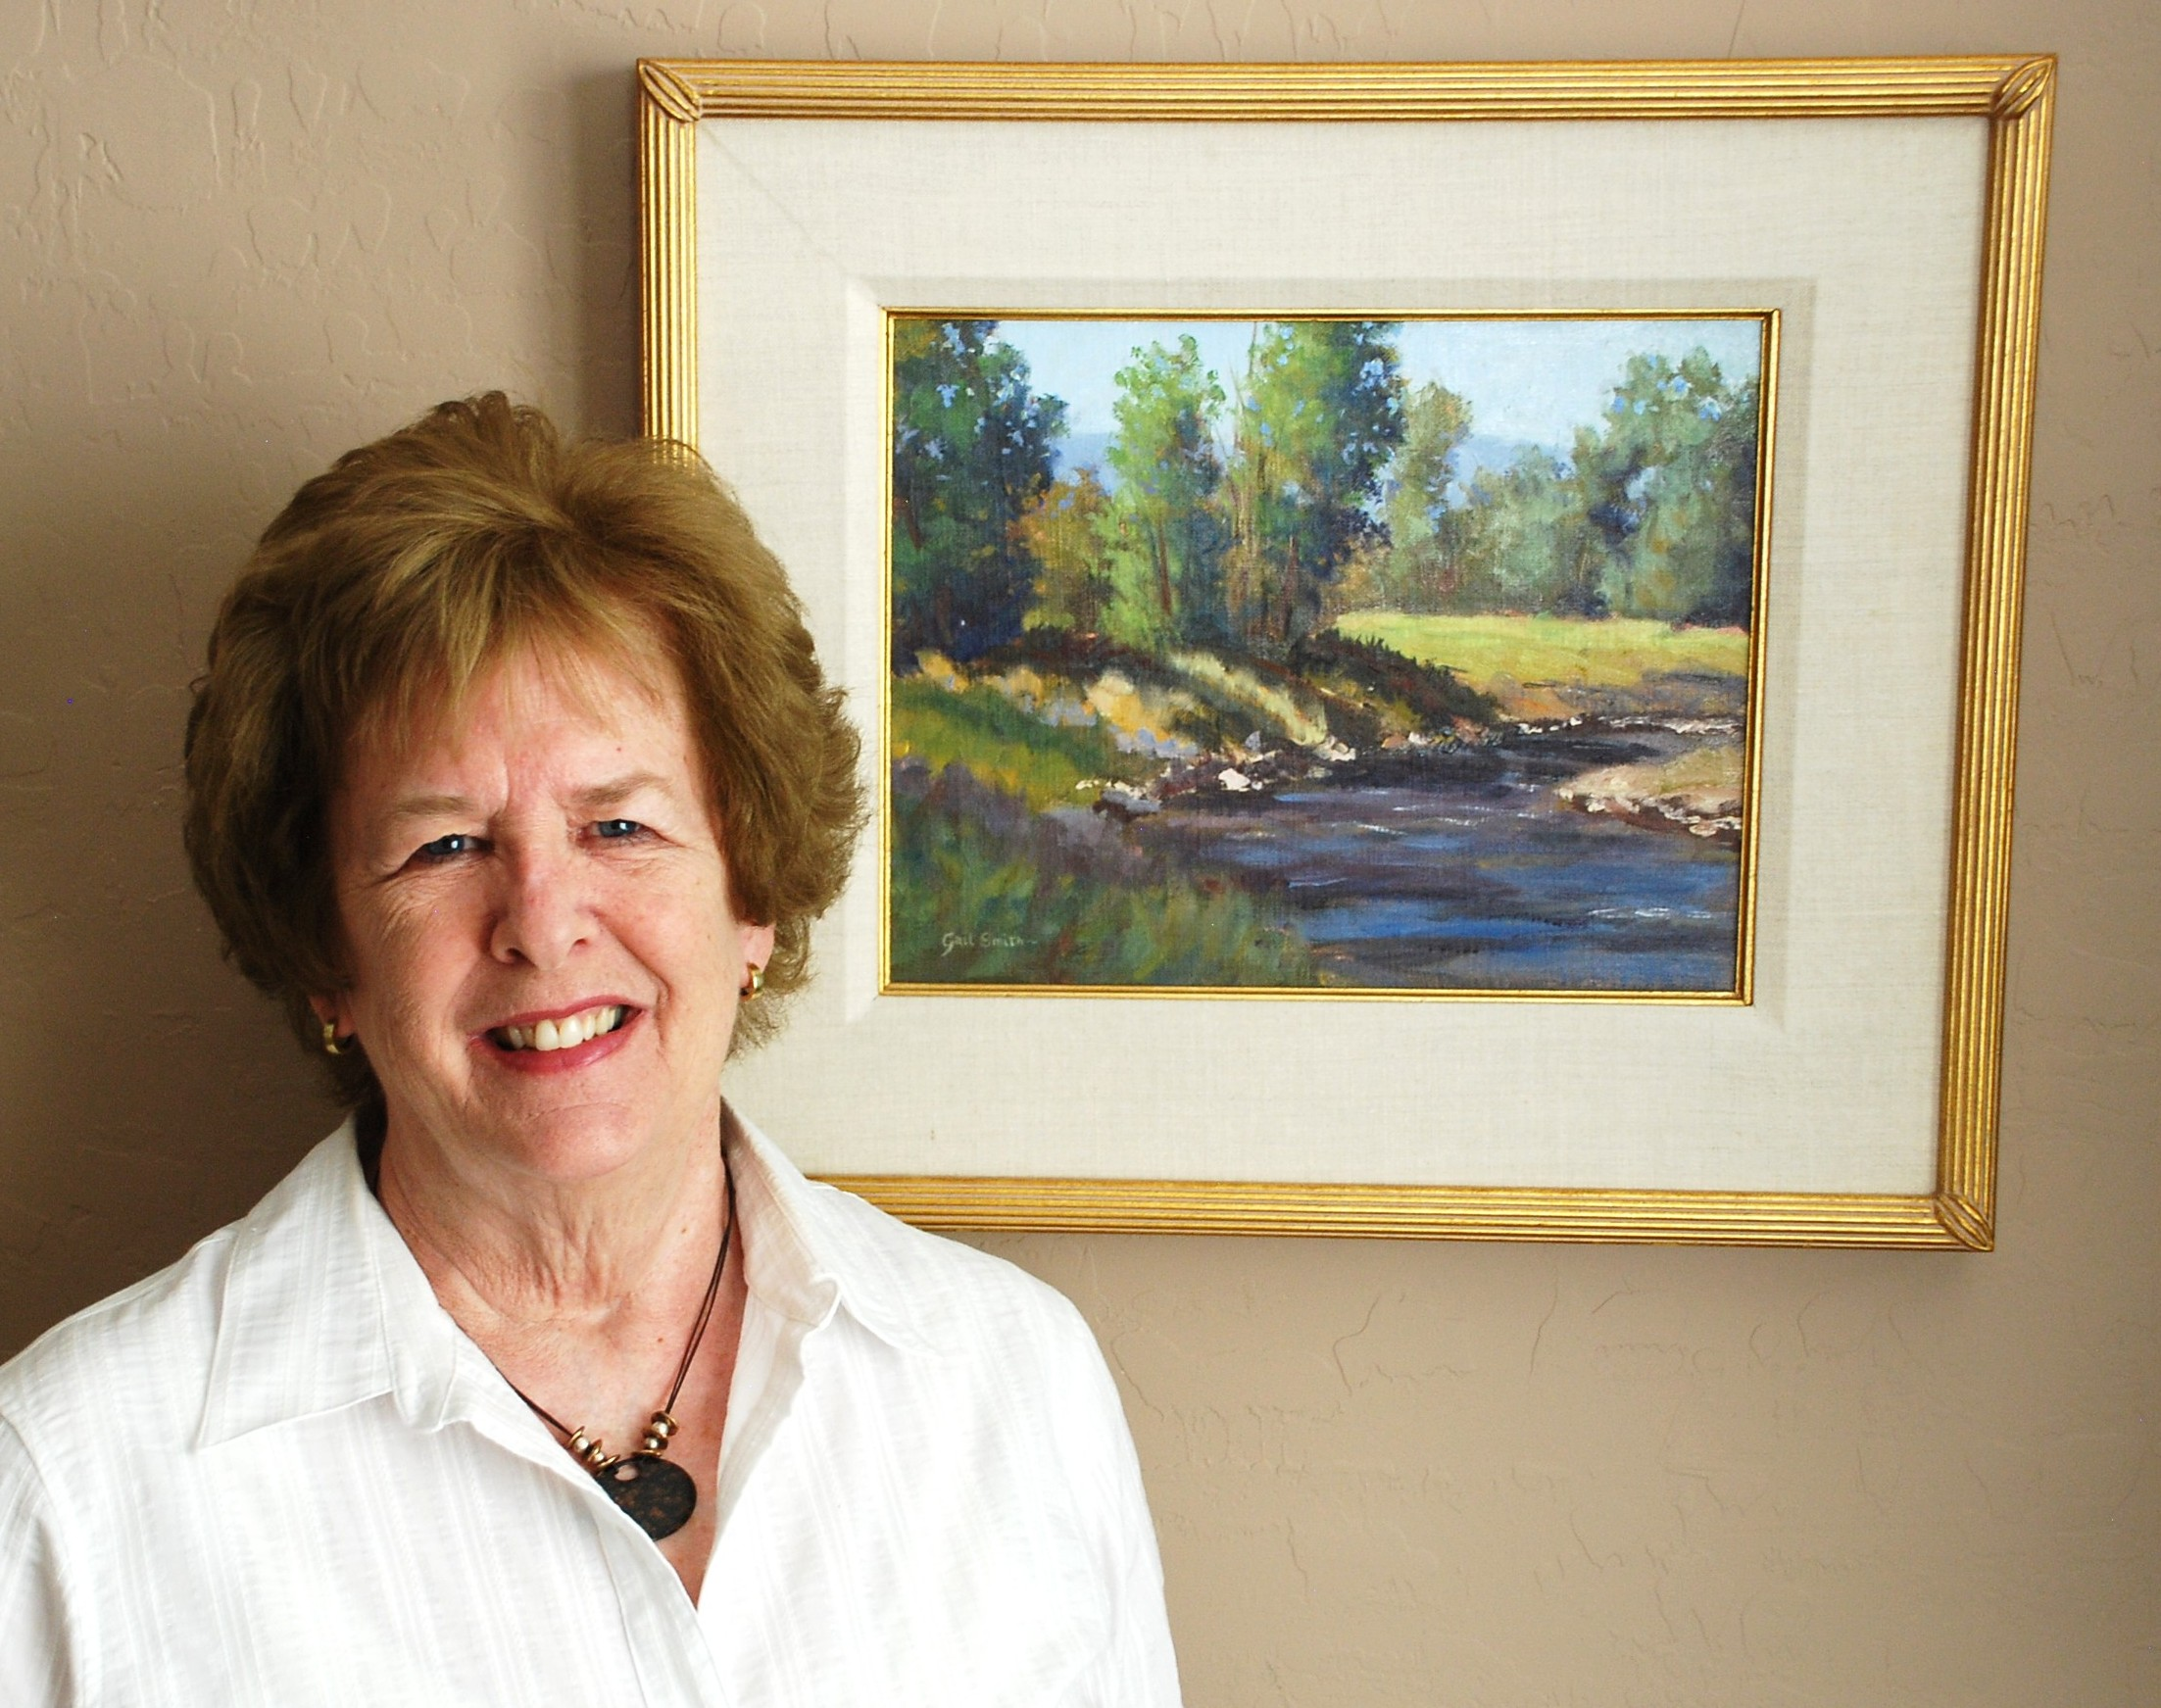 Gail Smith Offers Painting Class